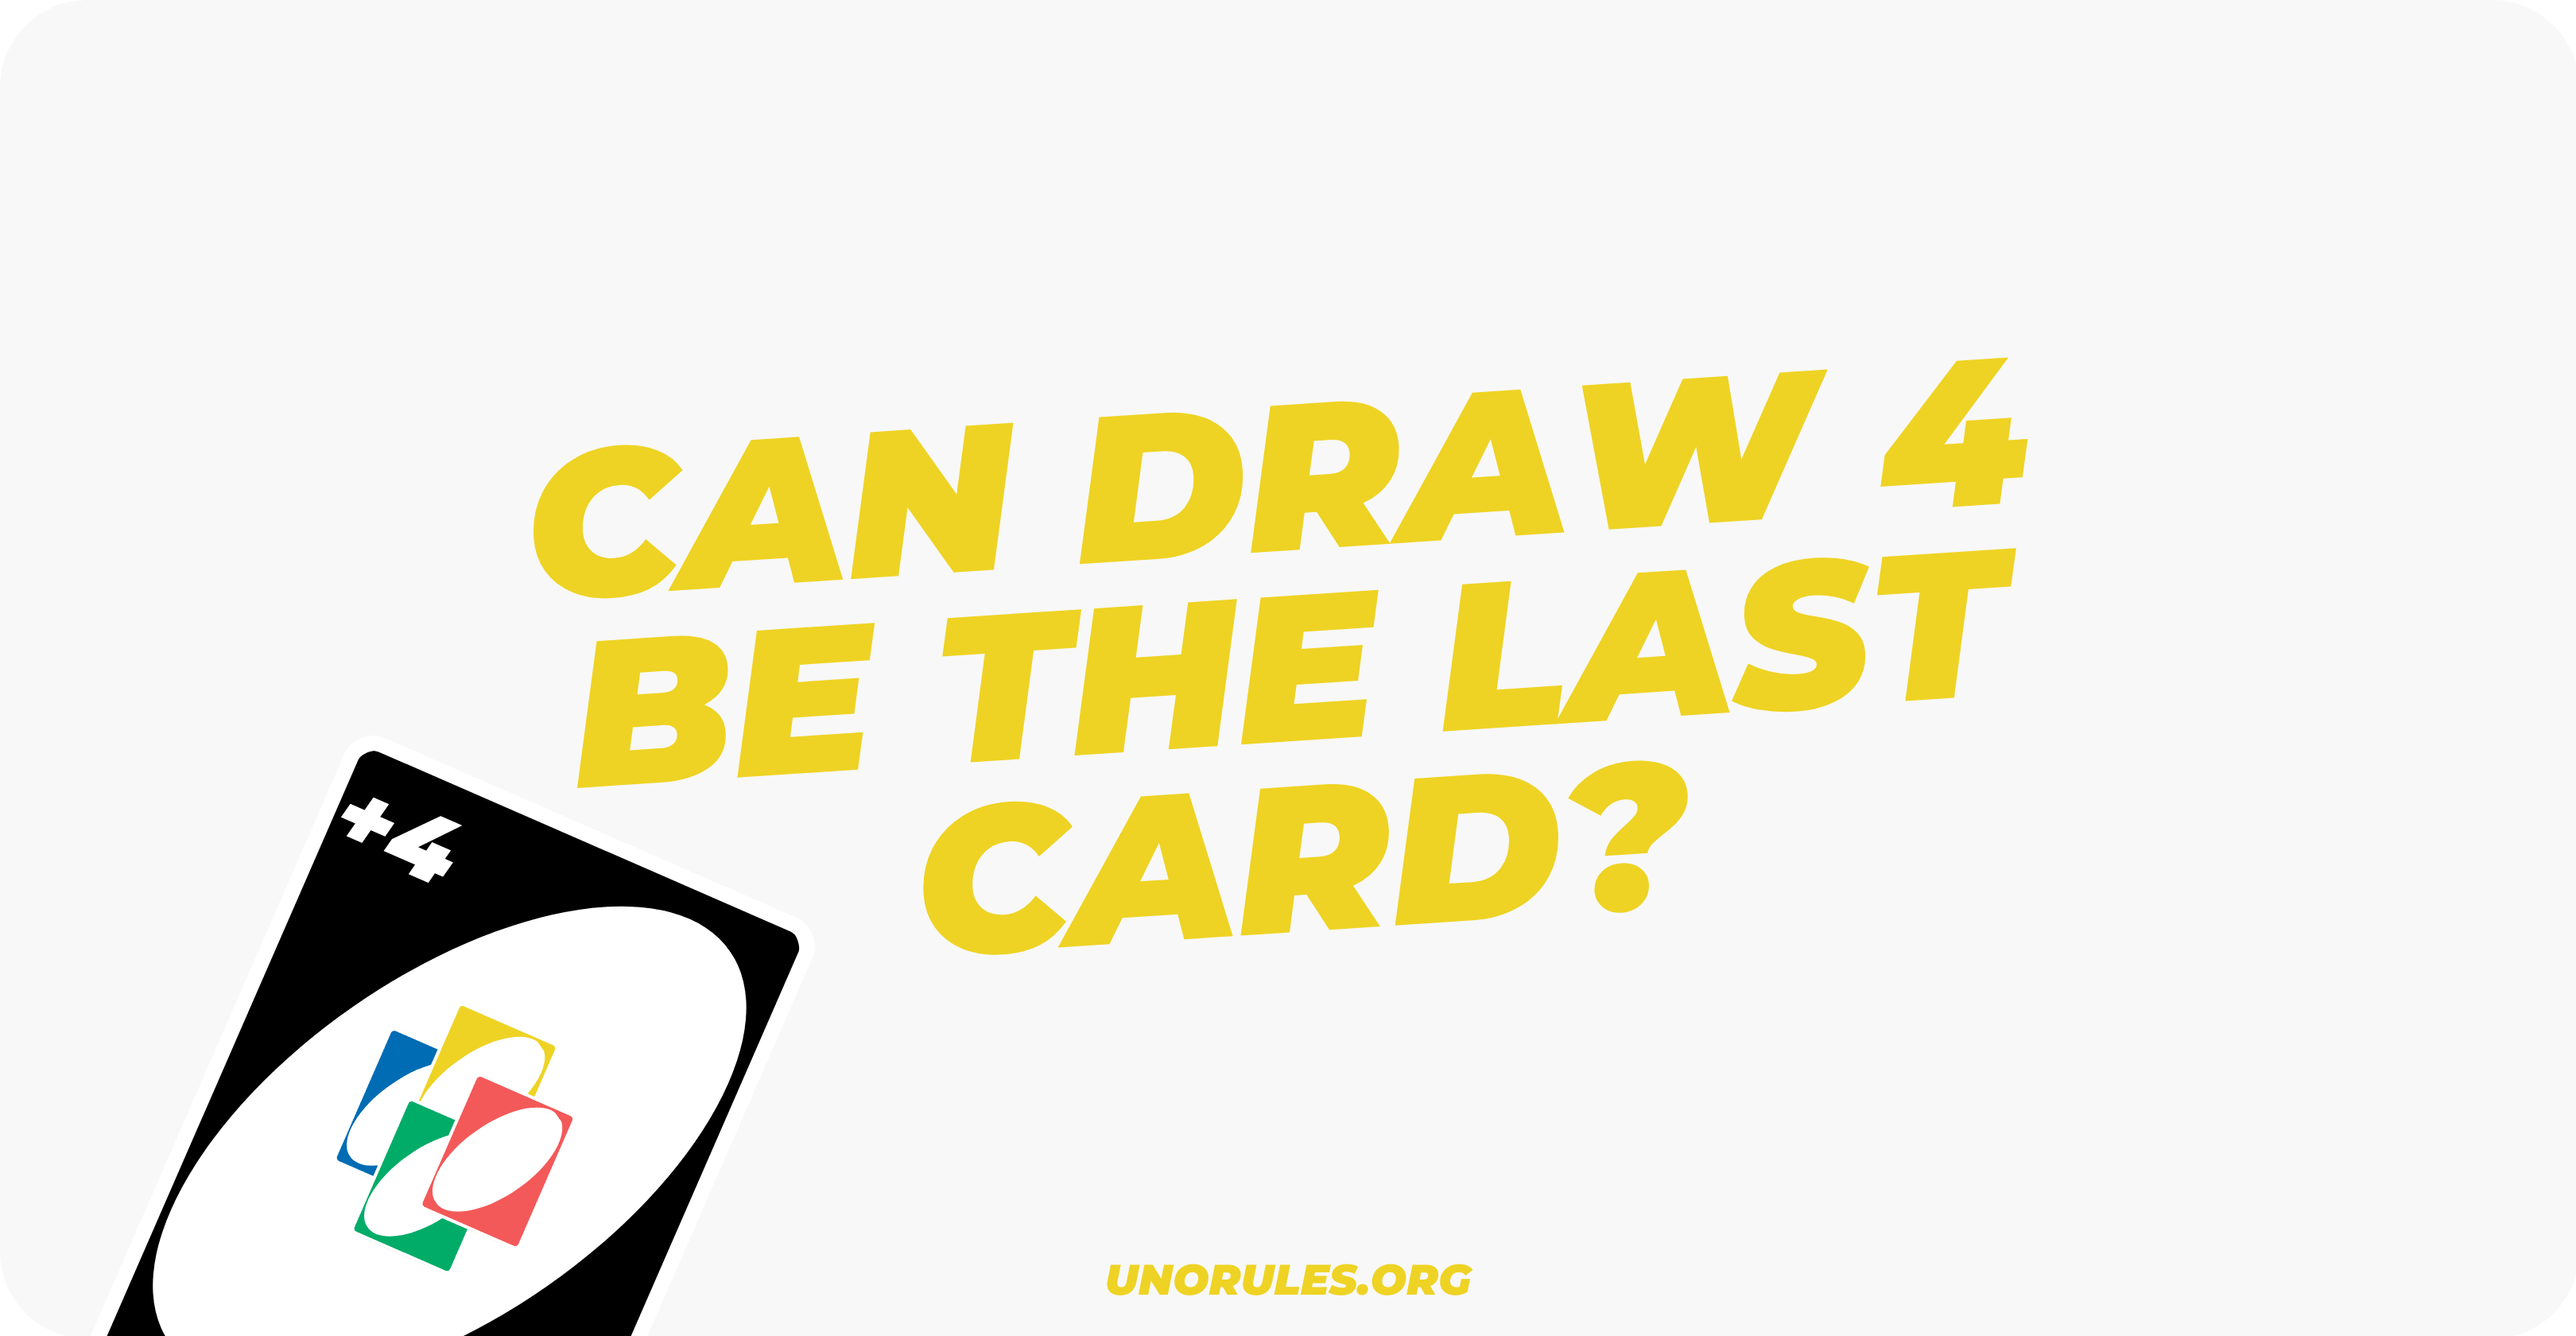 Can draw 4 be the last card